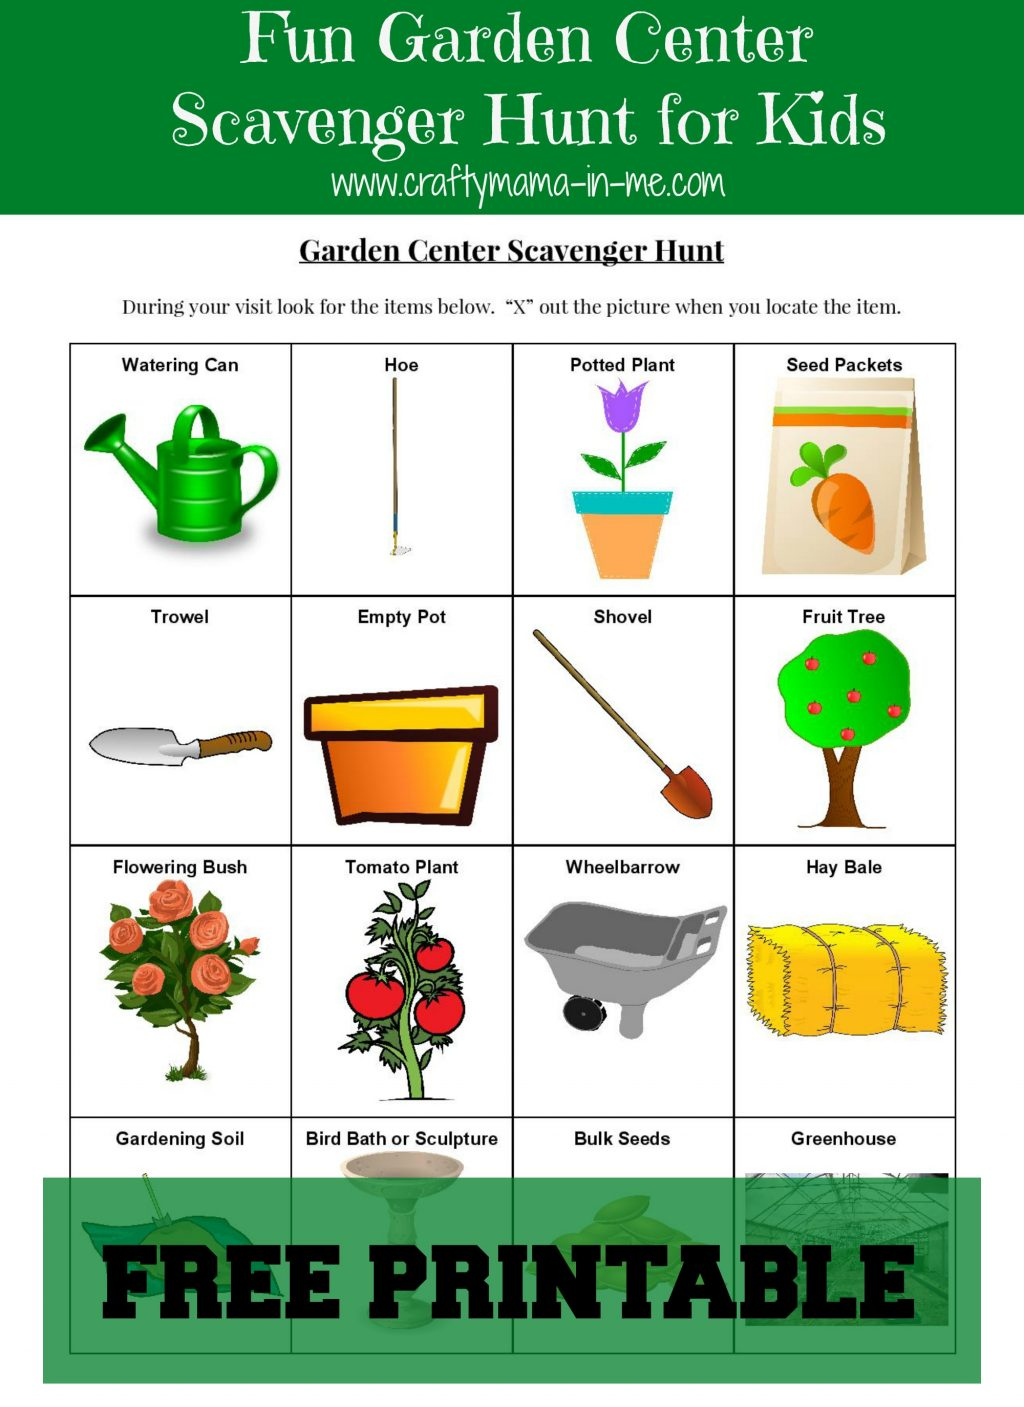 Fun Garden Center Scavenger Hunt For Kids Free Printable